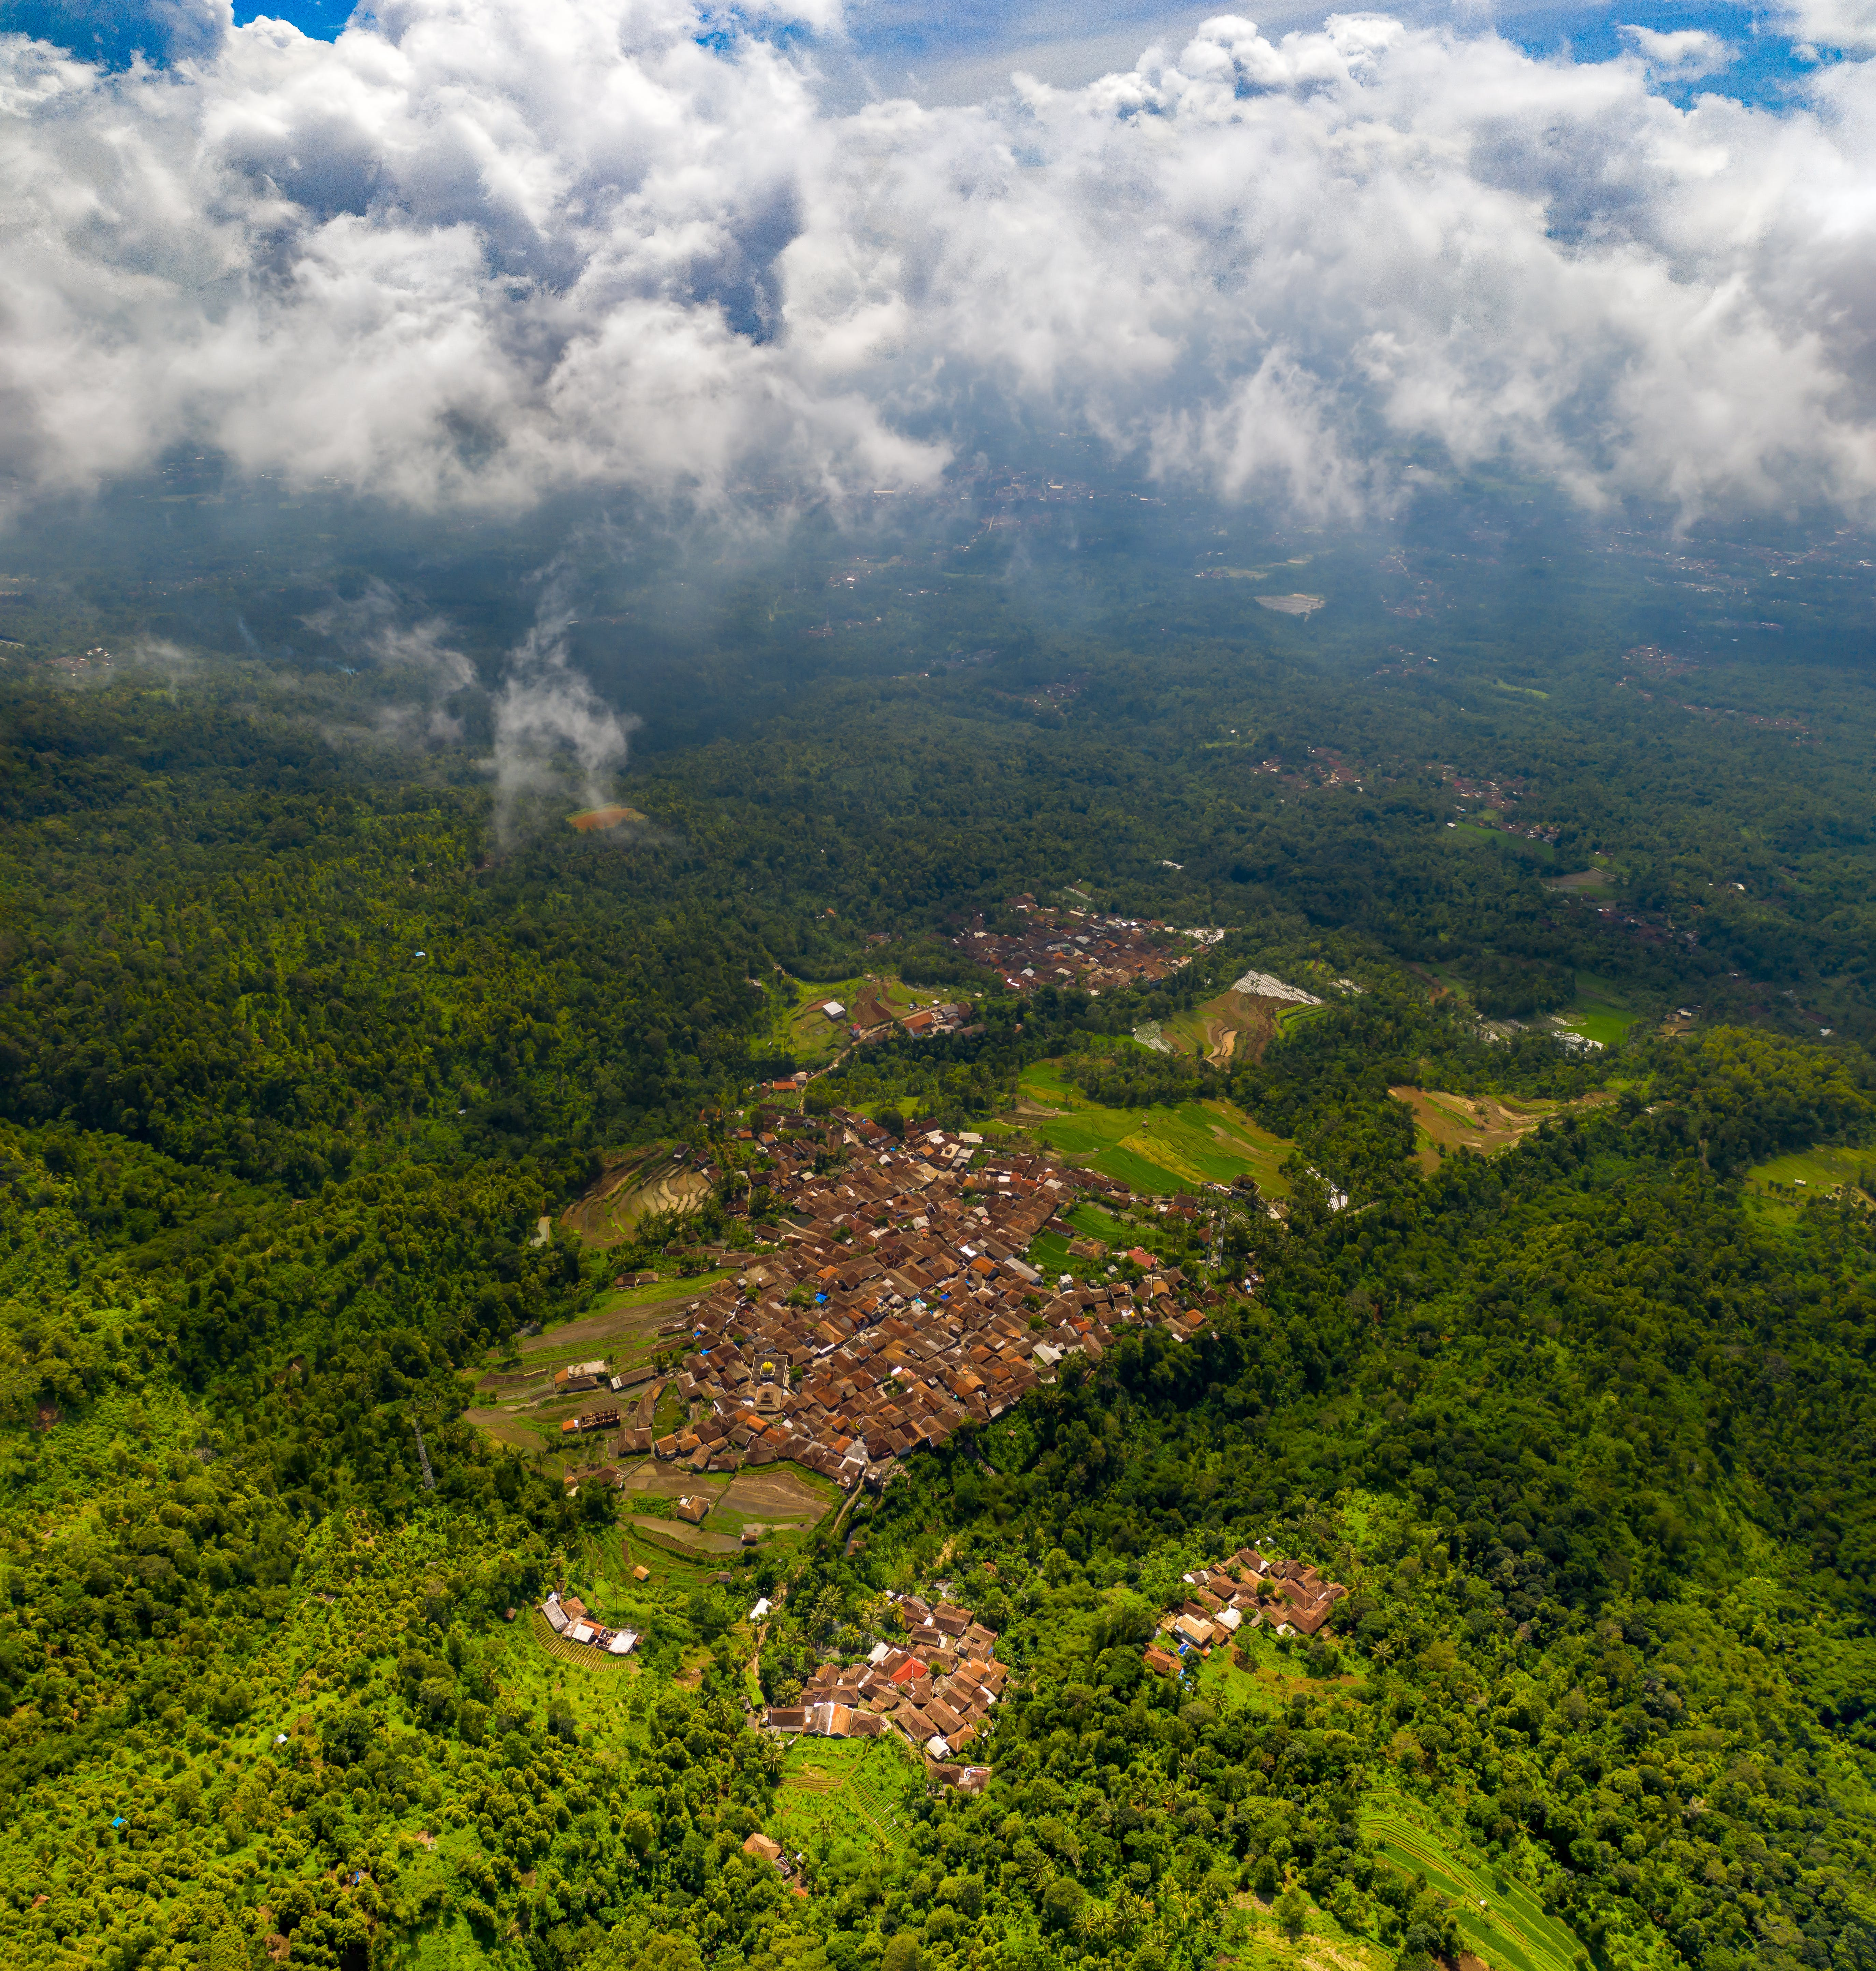 Aerial Photography of Village Surrounded By Trees